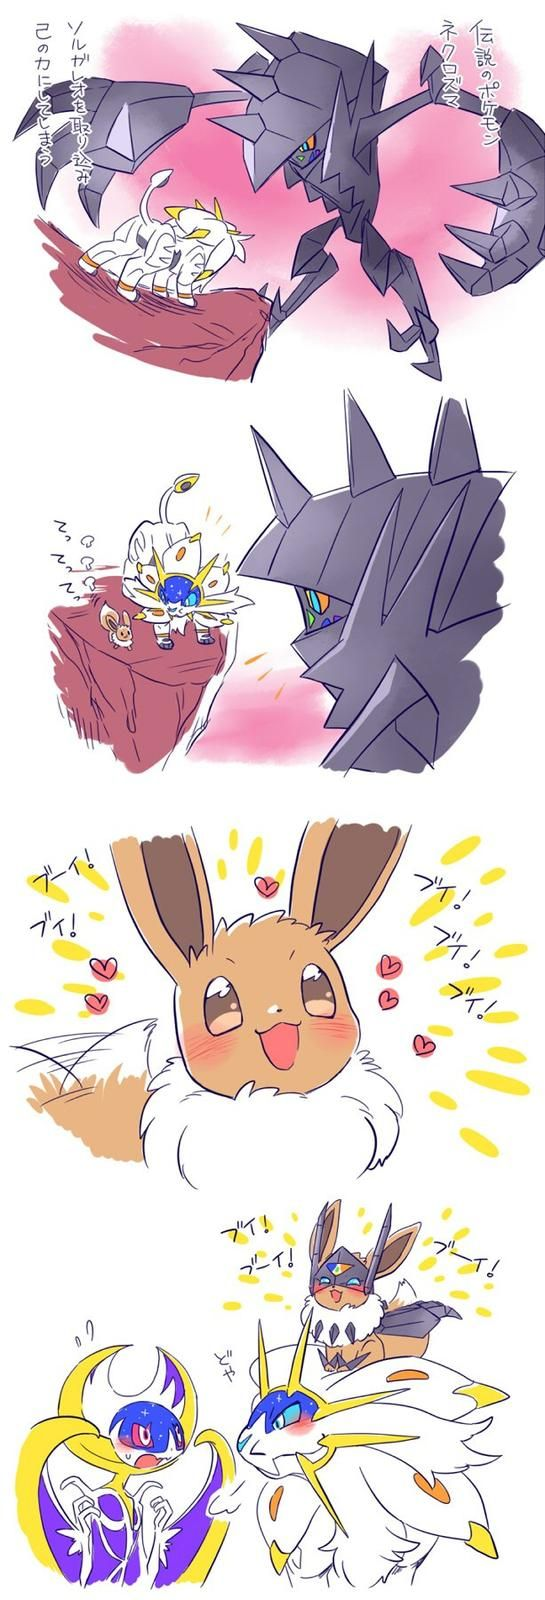 Necrozma's Newest Form. This is adorable X3